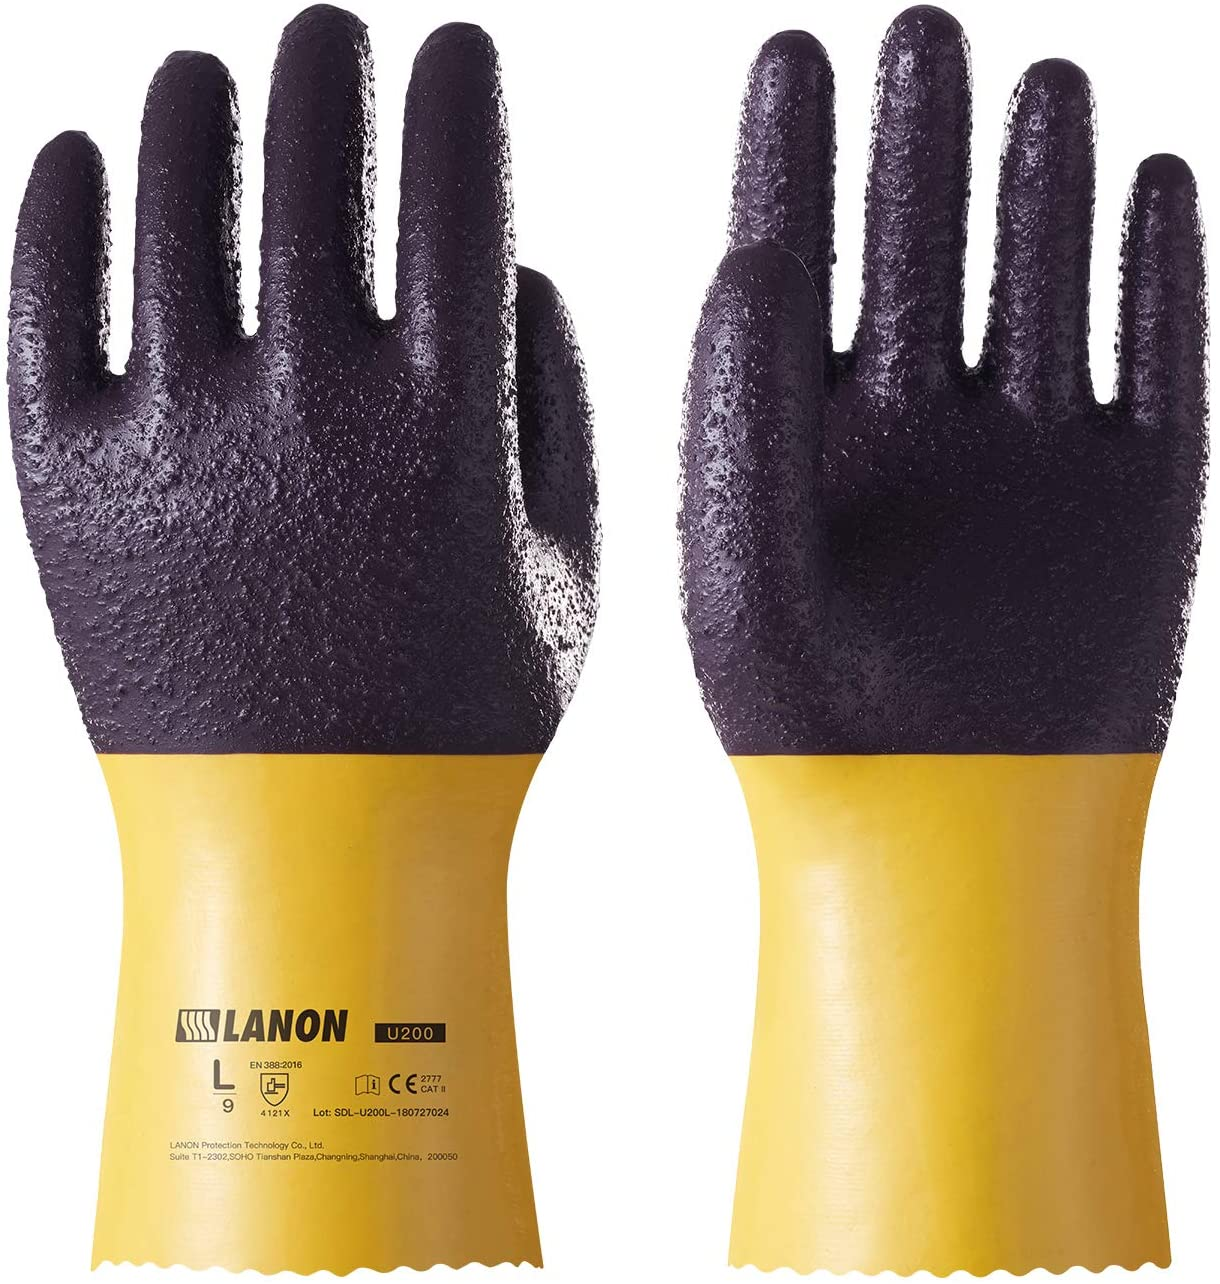 LANON PVC Coated Safety Work Gloves, Reusable Heavy Duty Gloves with Micro Granular Finish Palm, Non-Slip, X Large